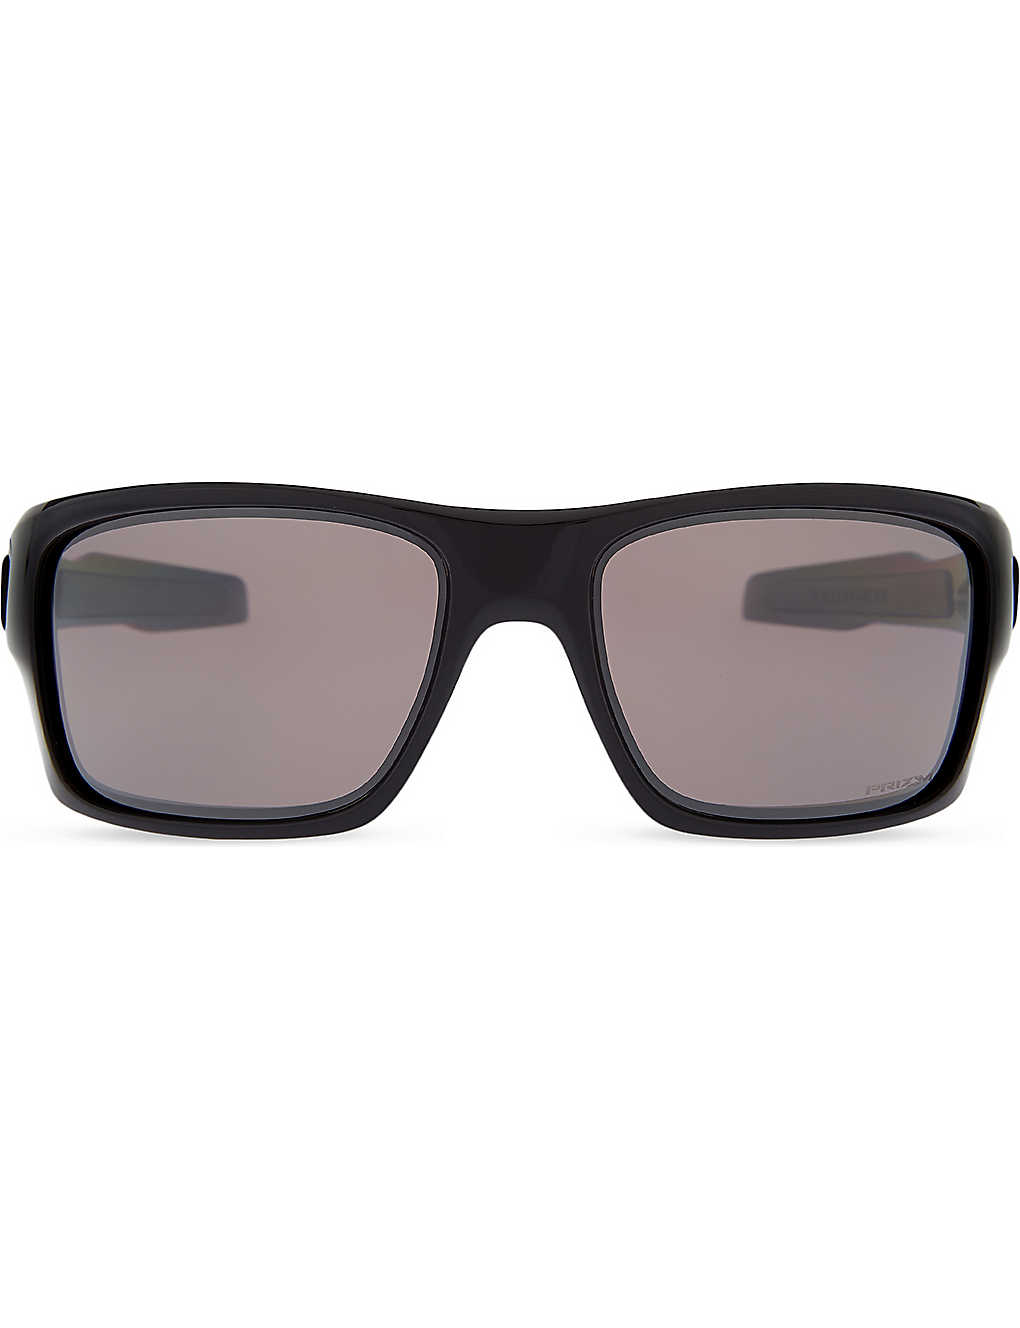 c4c102fa20 OAKLEY - Moonlighter OO9320 round-frame sunglasses